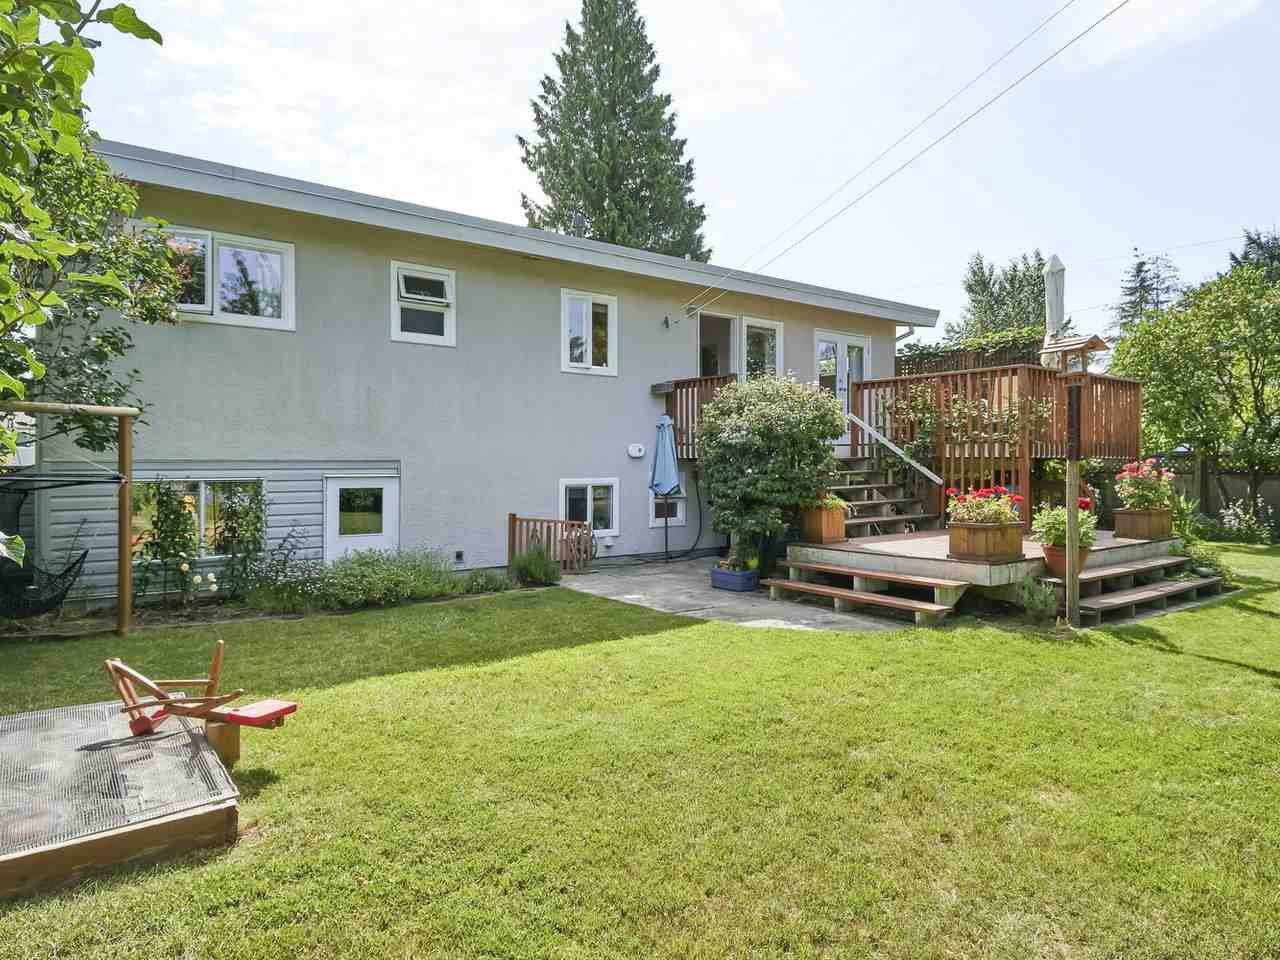 Photo 5: Photos: 814 LEVIS Street in Coquitlam: Harbour Place House for sale : MLS®# R2381563